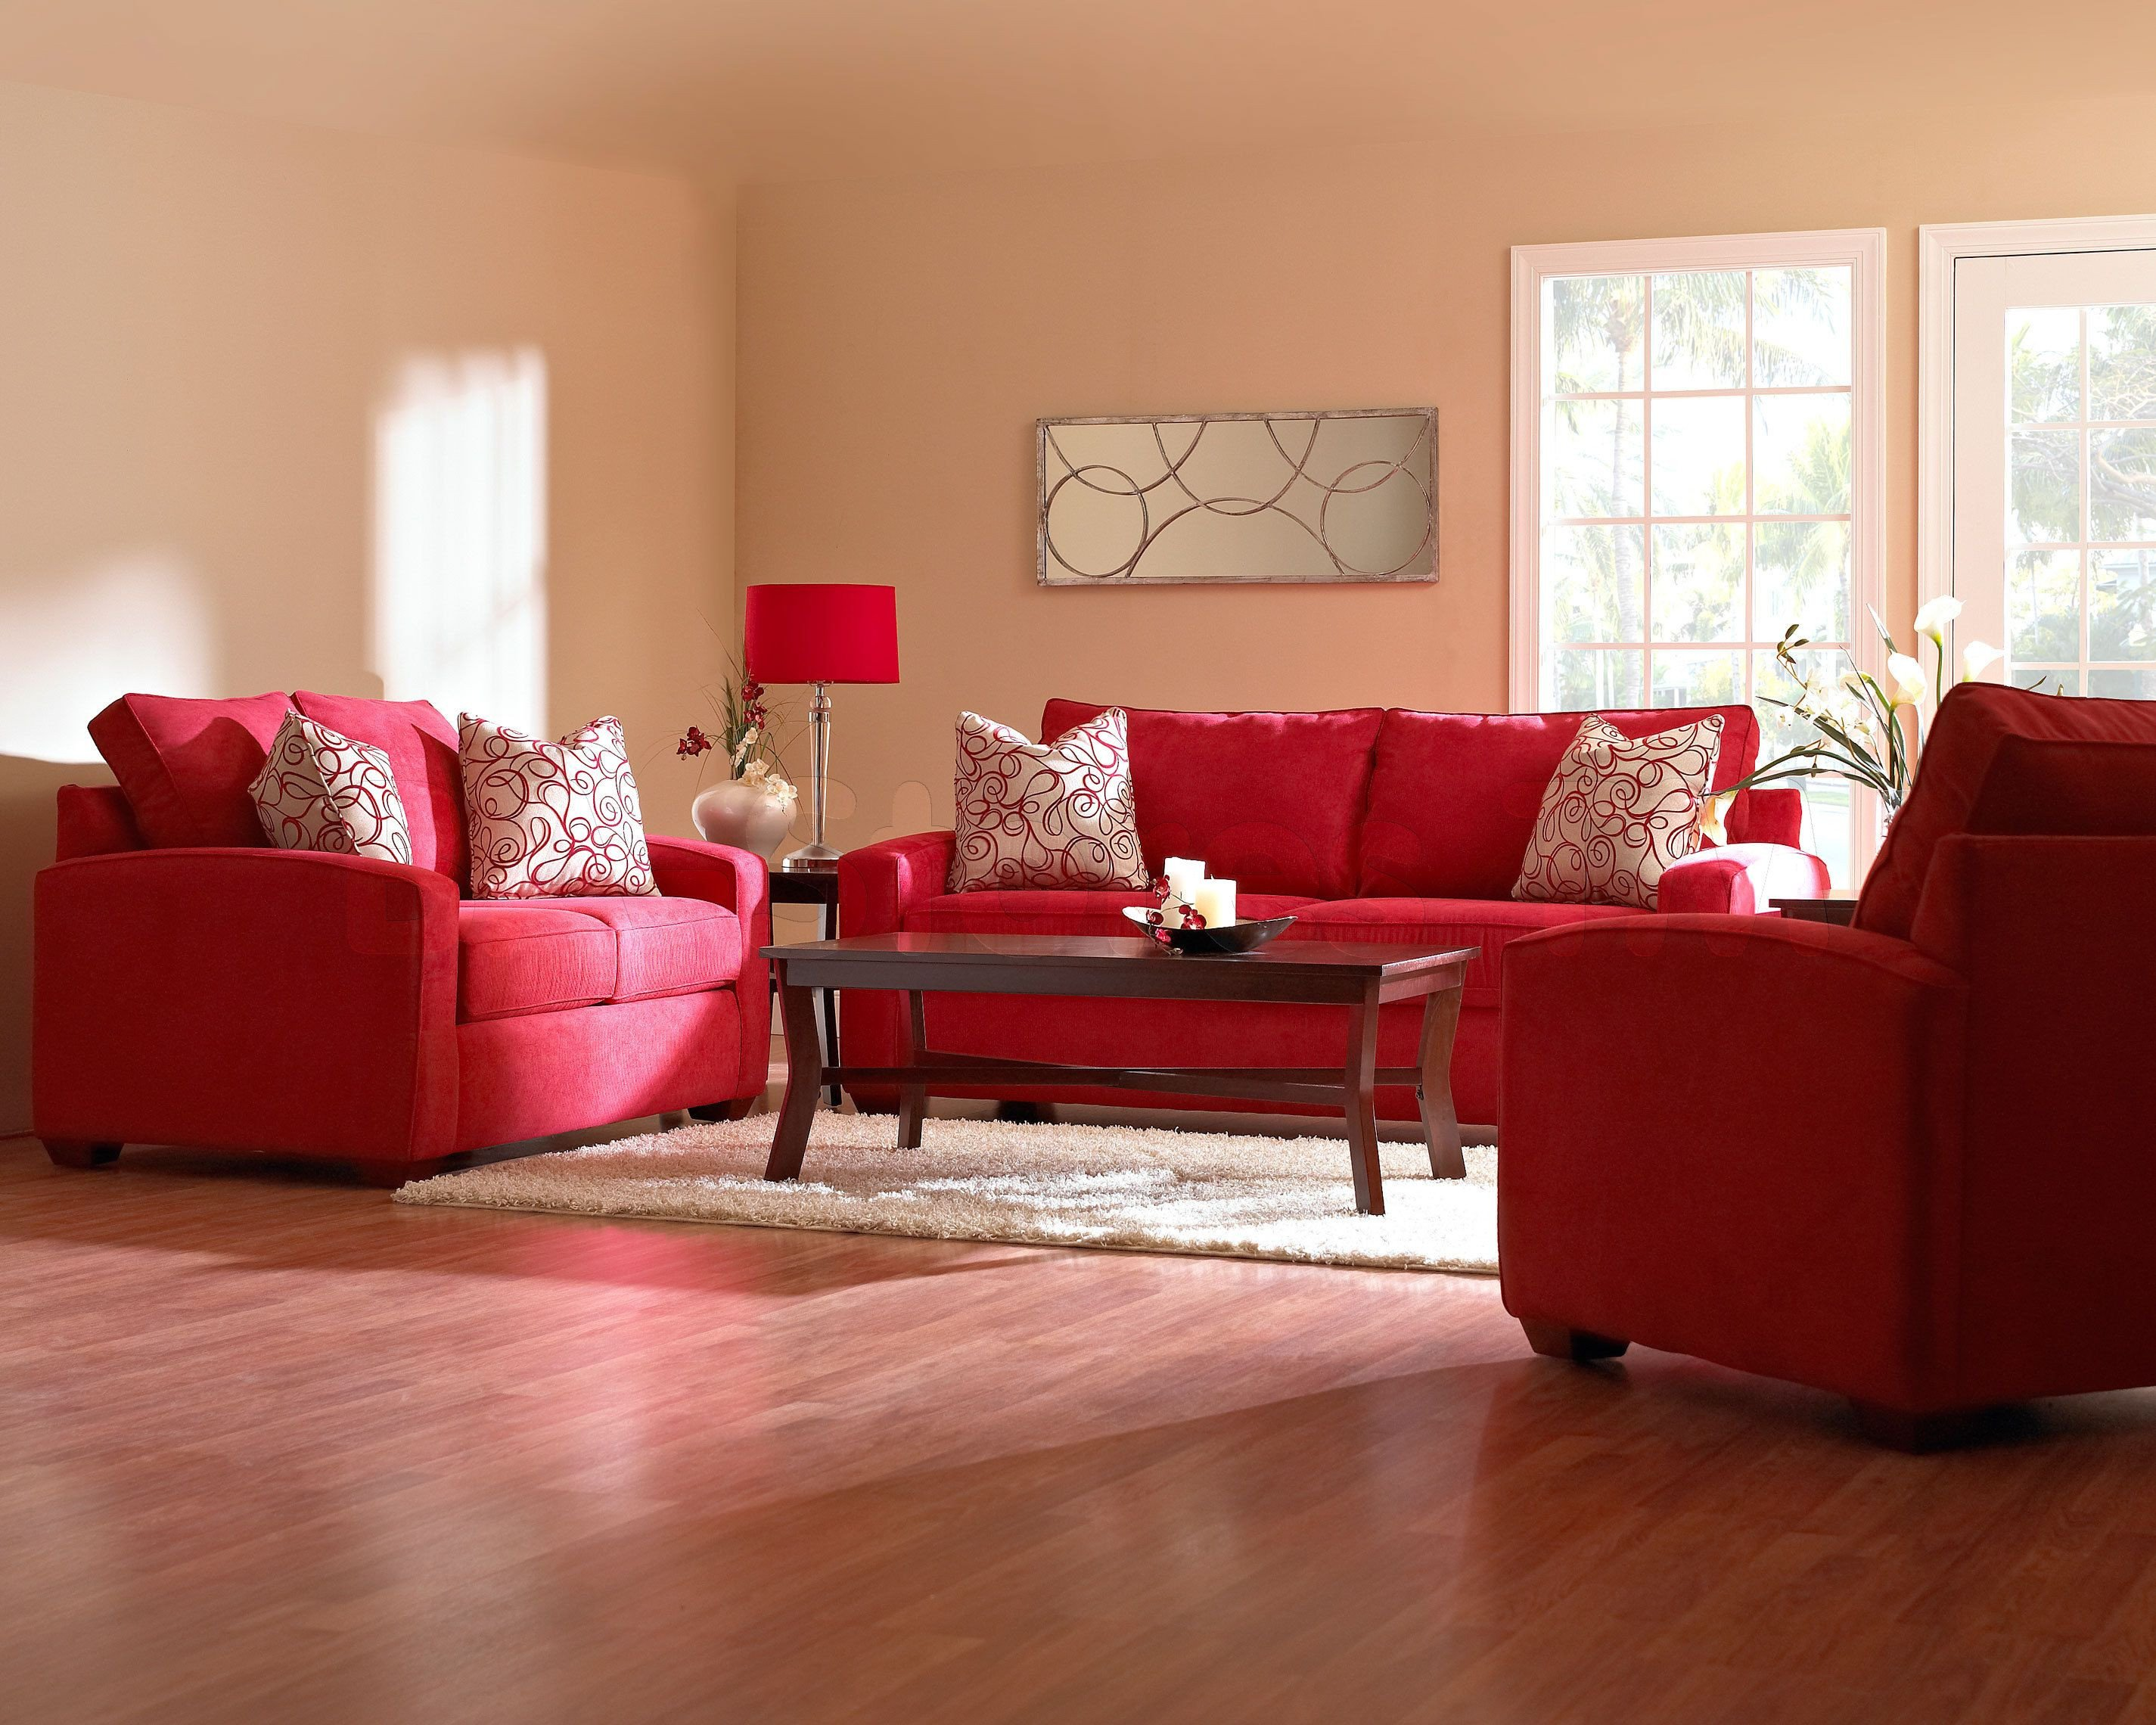 Red Couch Living Room Decor Image Result for Living Rooms with Red Furniture